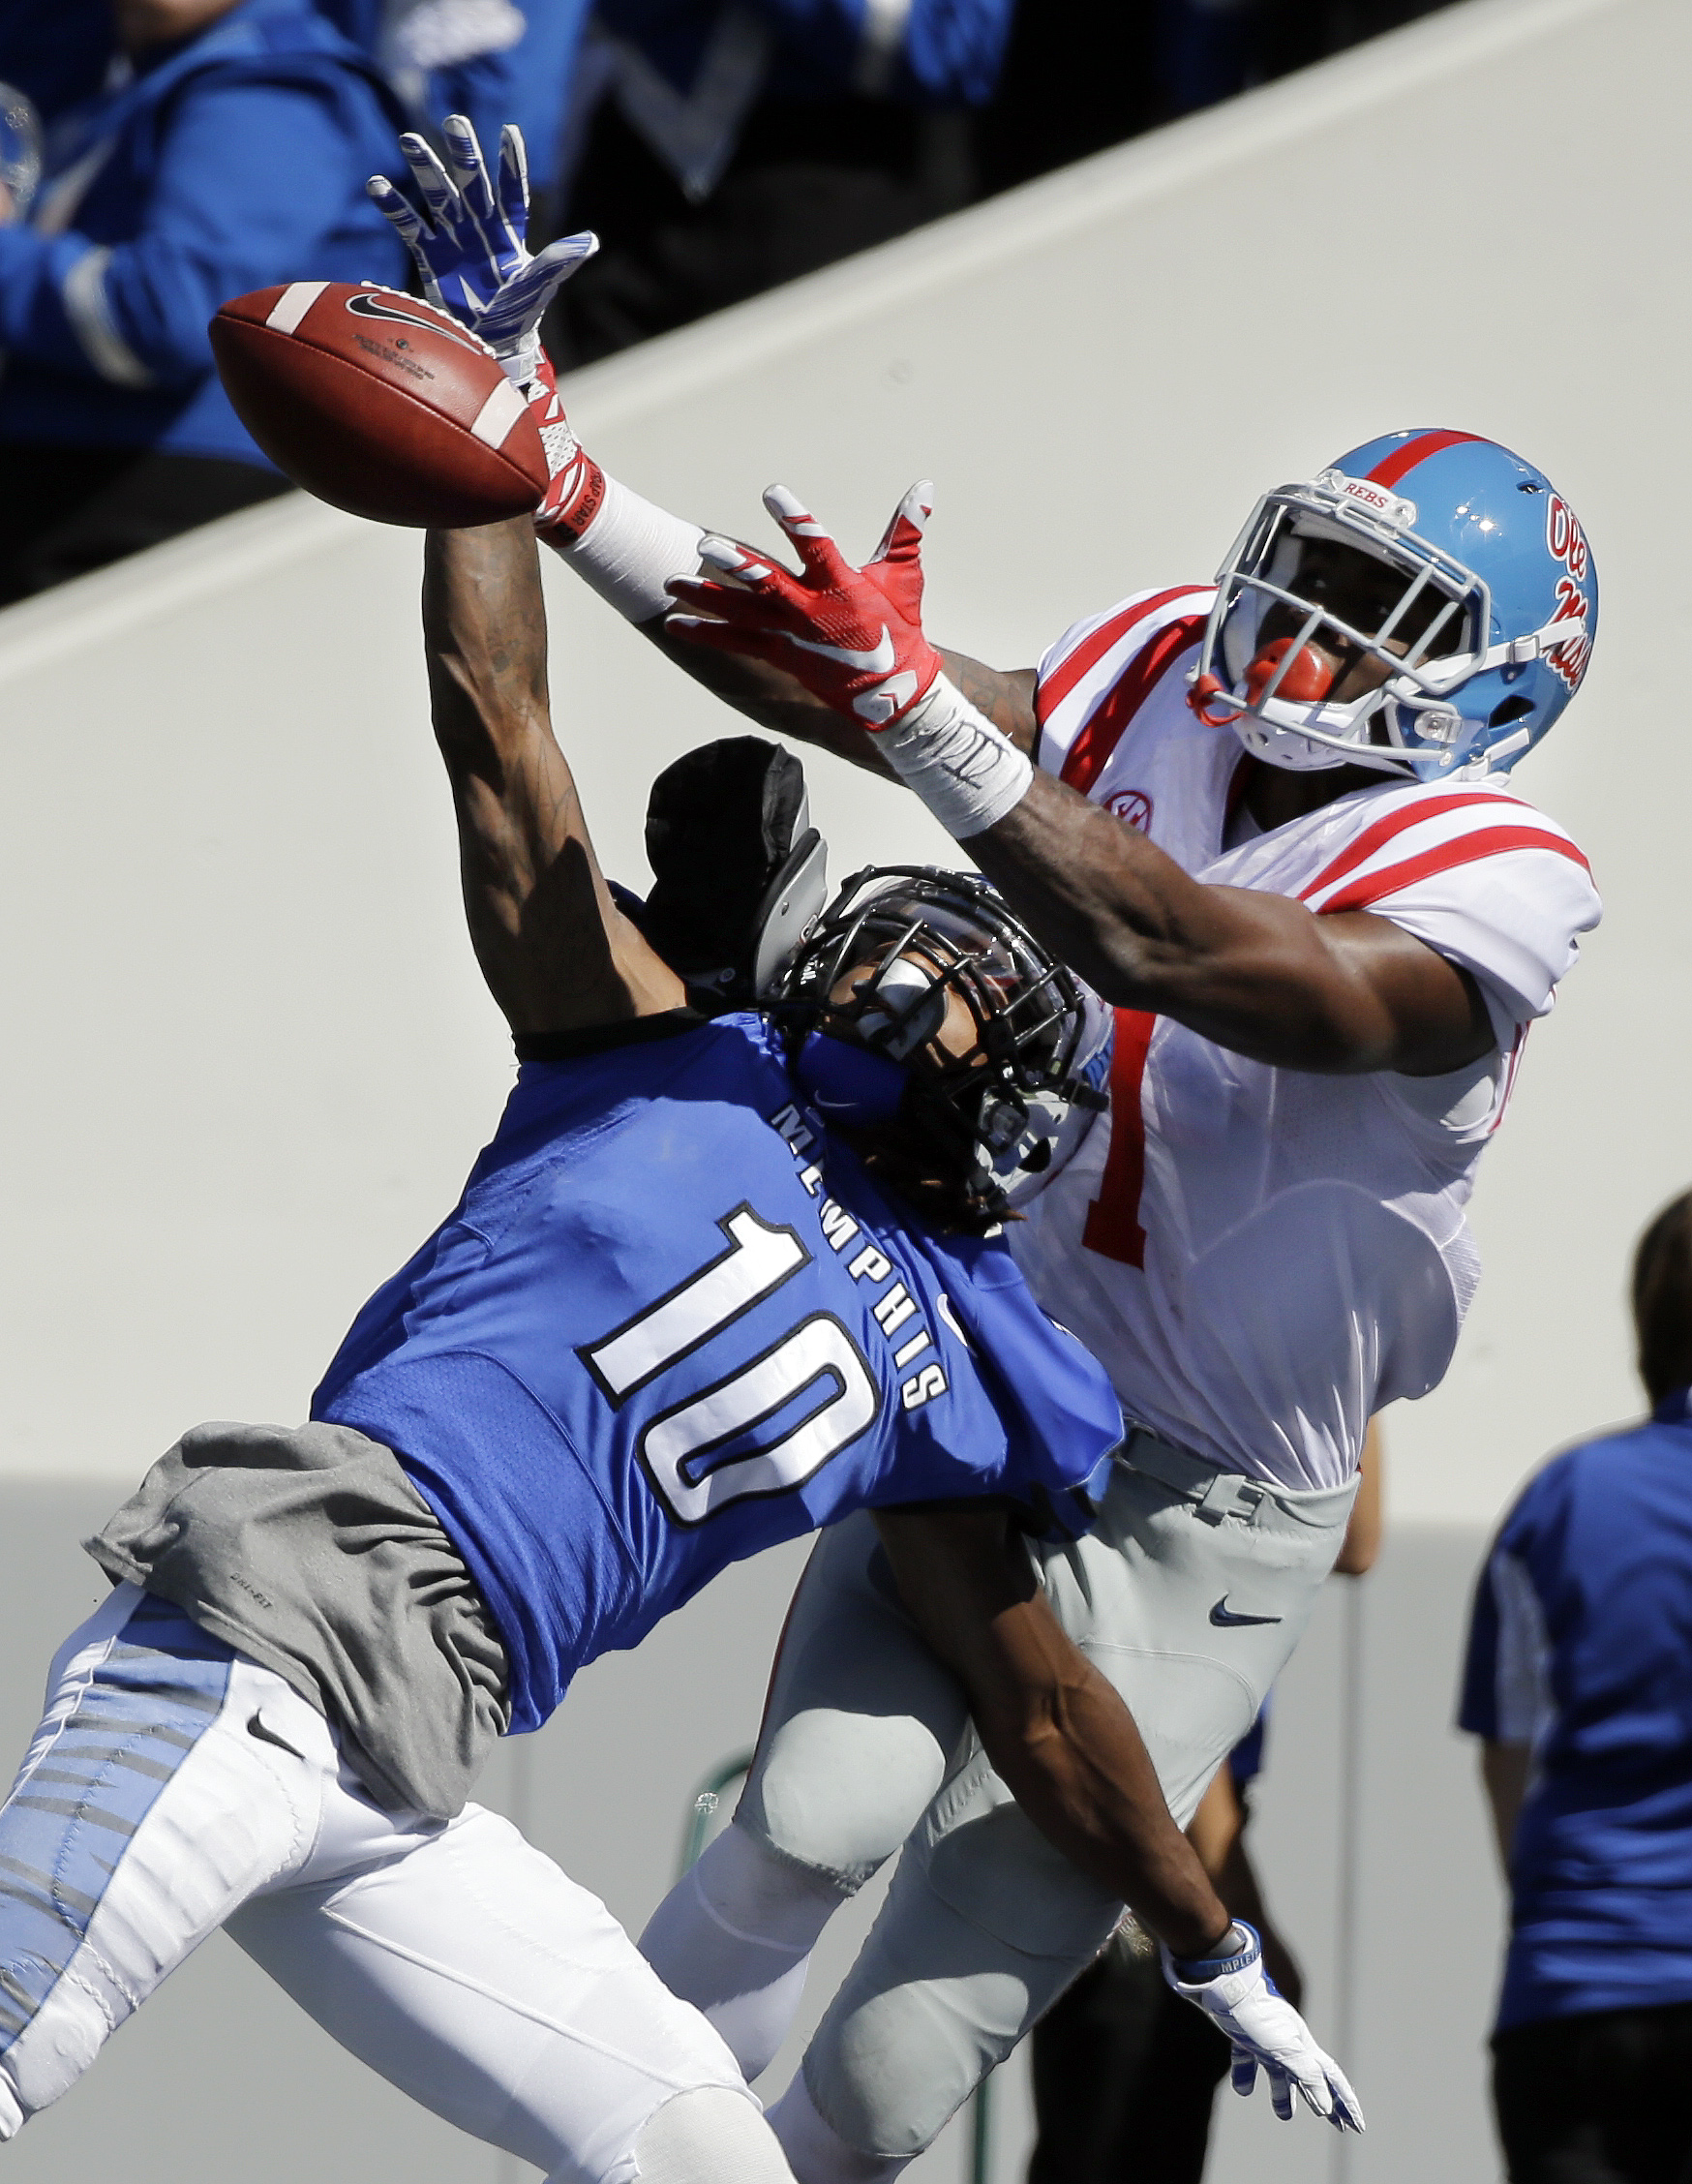 Memphis defensive back Dontrell Nelson (10) breaks up a pass intended for Mississippi wide receiver Laquon Treadwell  (1) in the first half of an NCAA college football game Saturday, Oct. 17, 2015, in Memphis, Tenn. (AP Photo/Mark Humphrey)